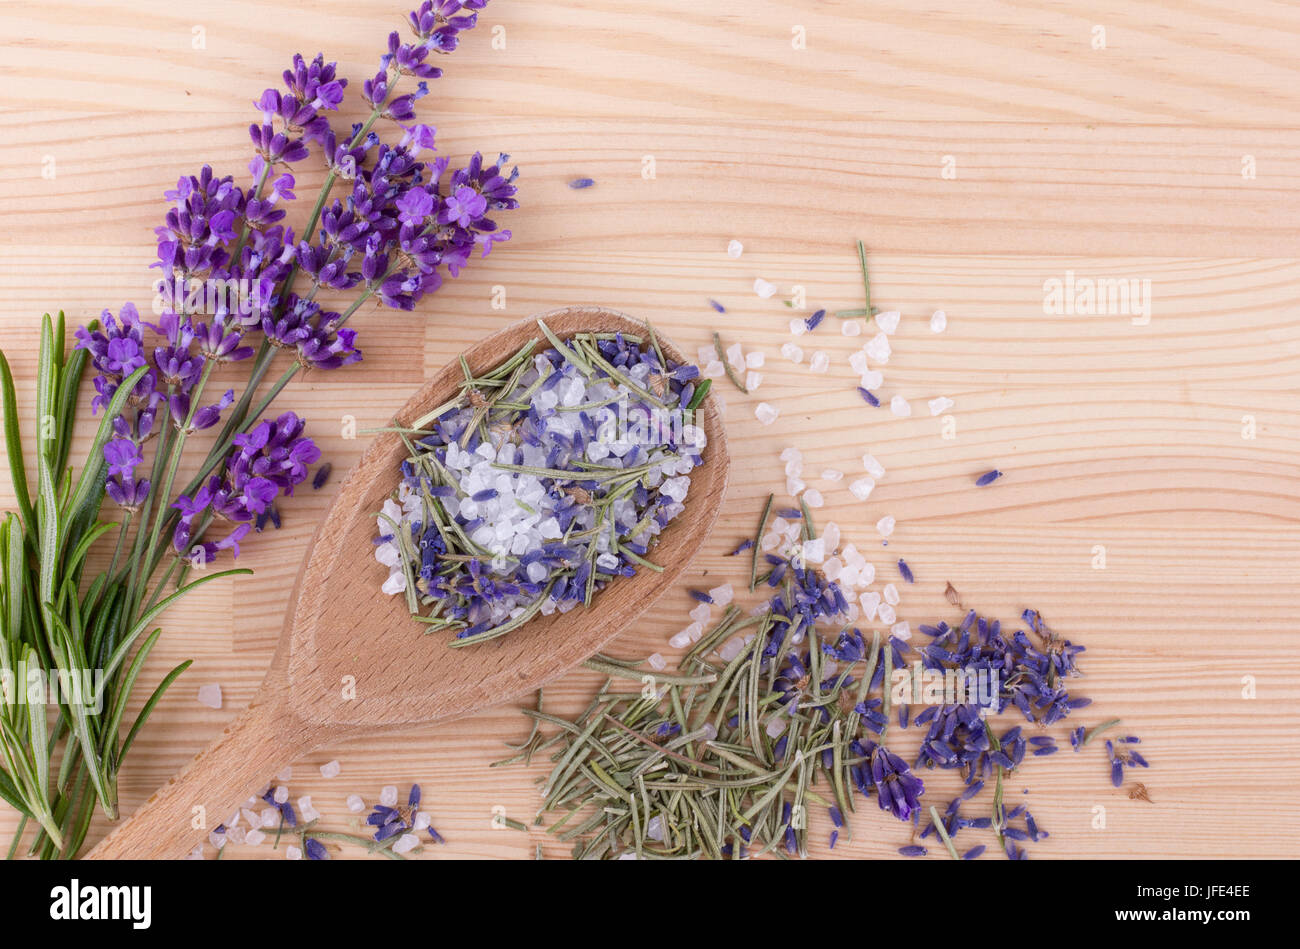 spoon with Herb salt of rosemary and lavender blossoms - Stock Image